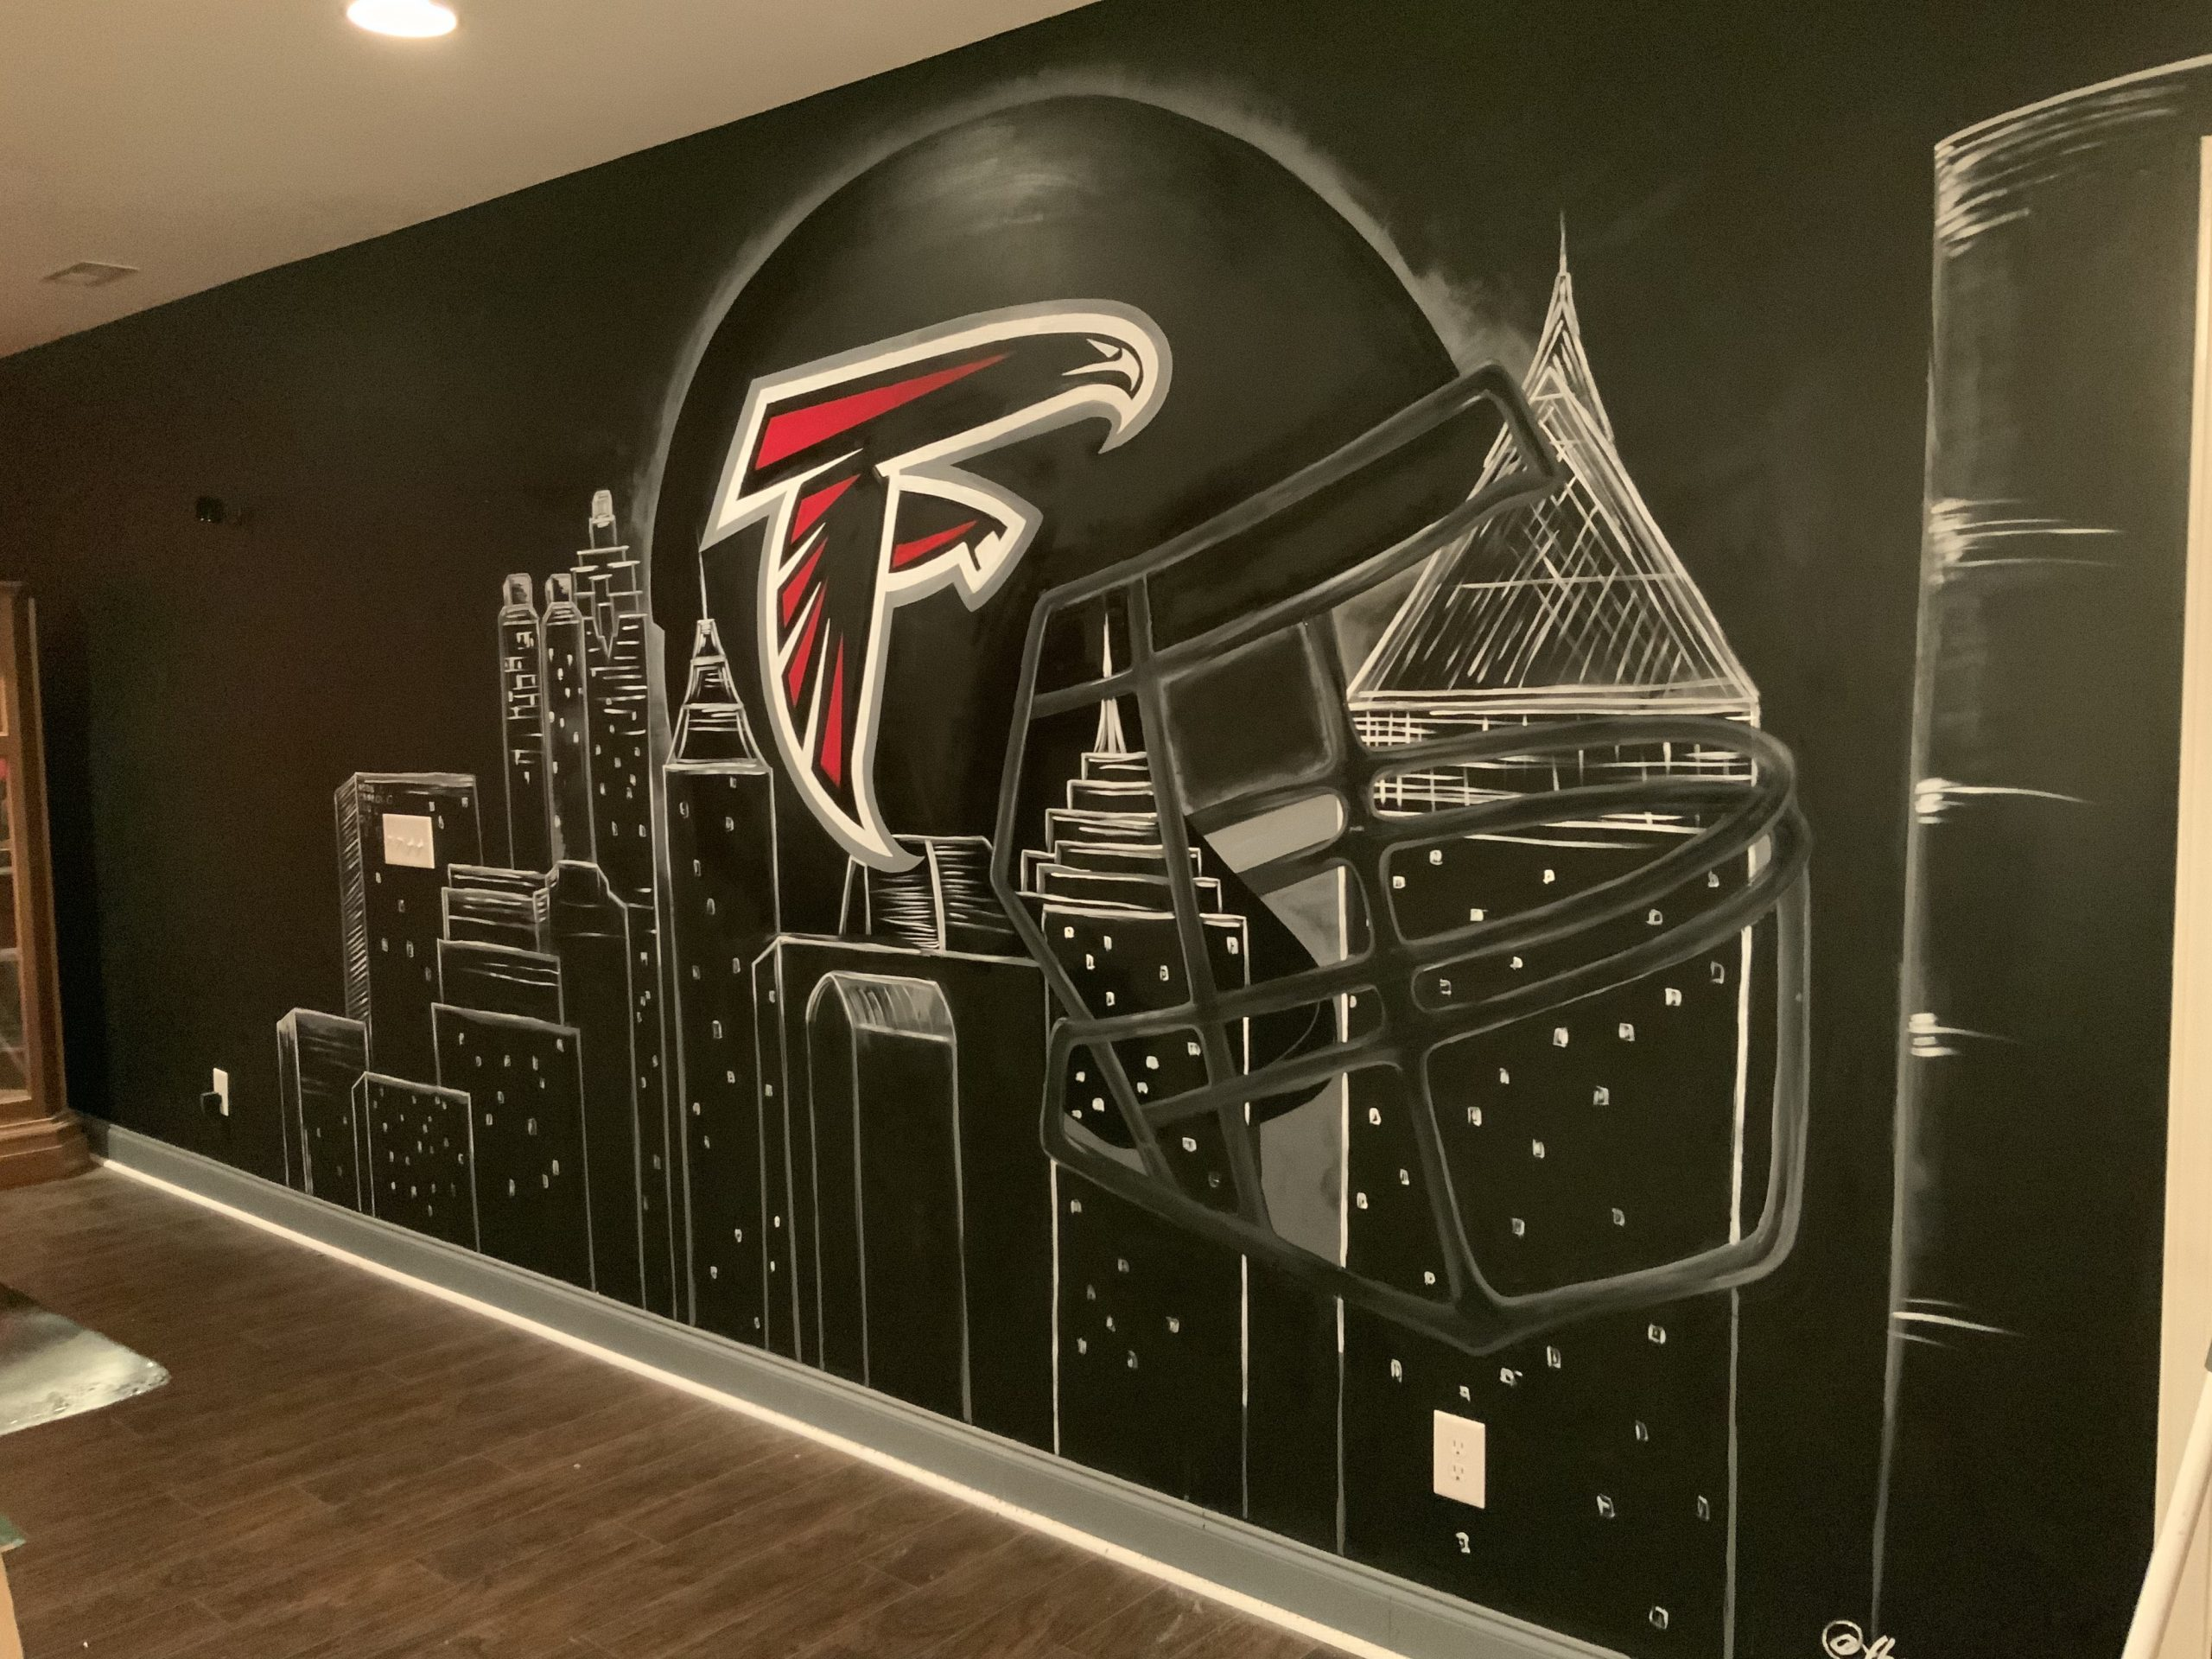 Private Client Home: Falcons Helmet